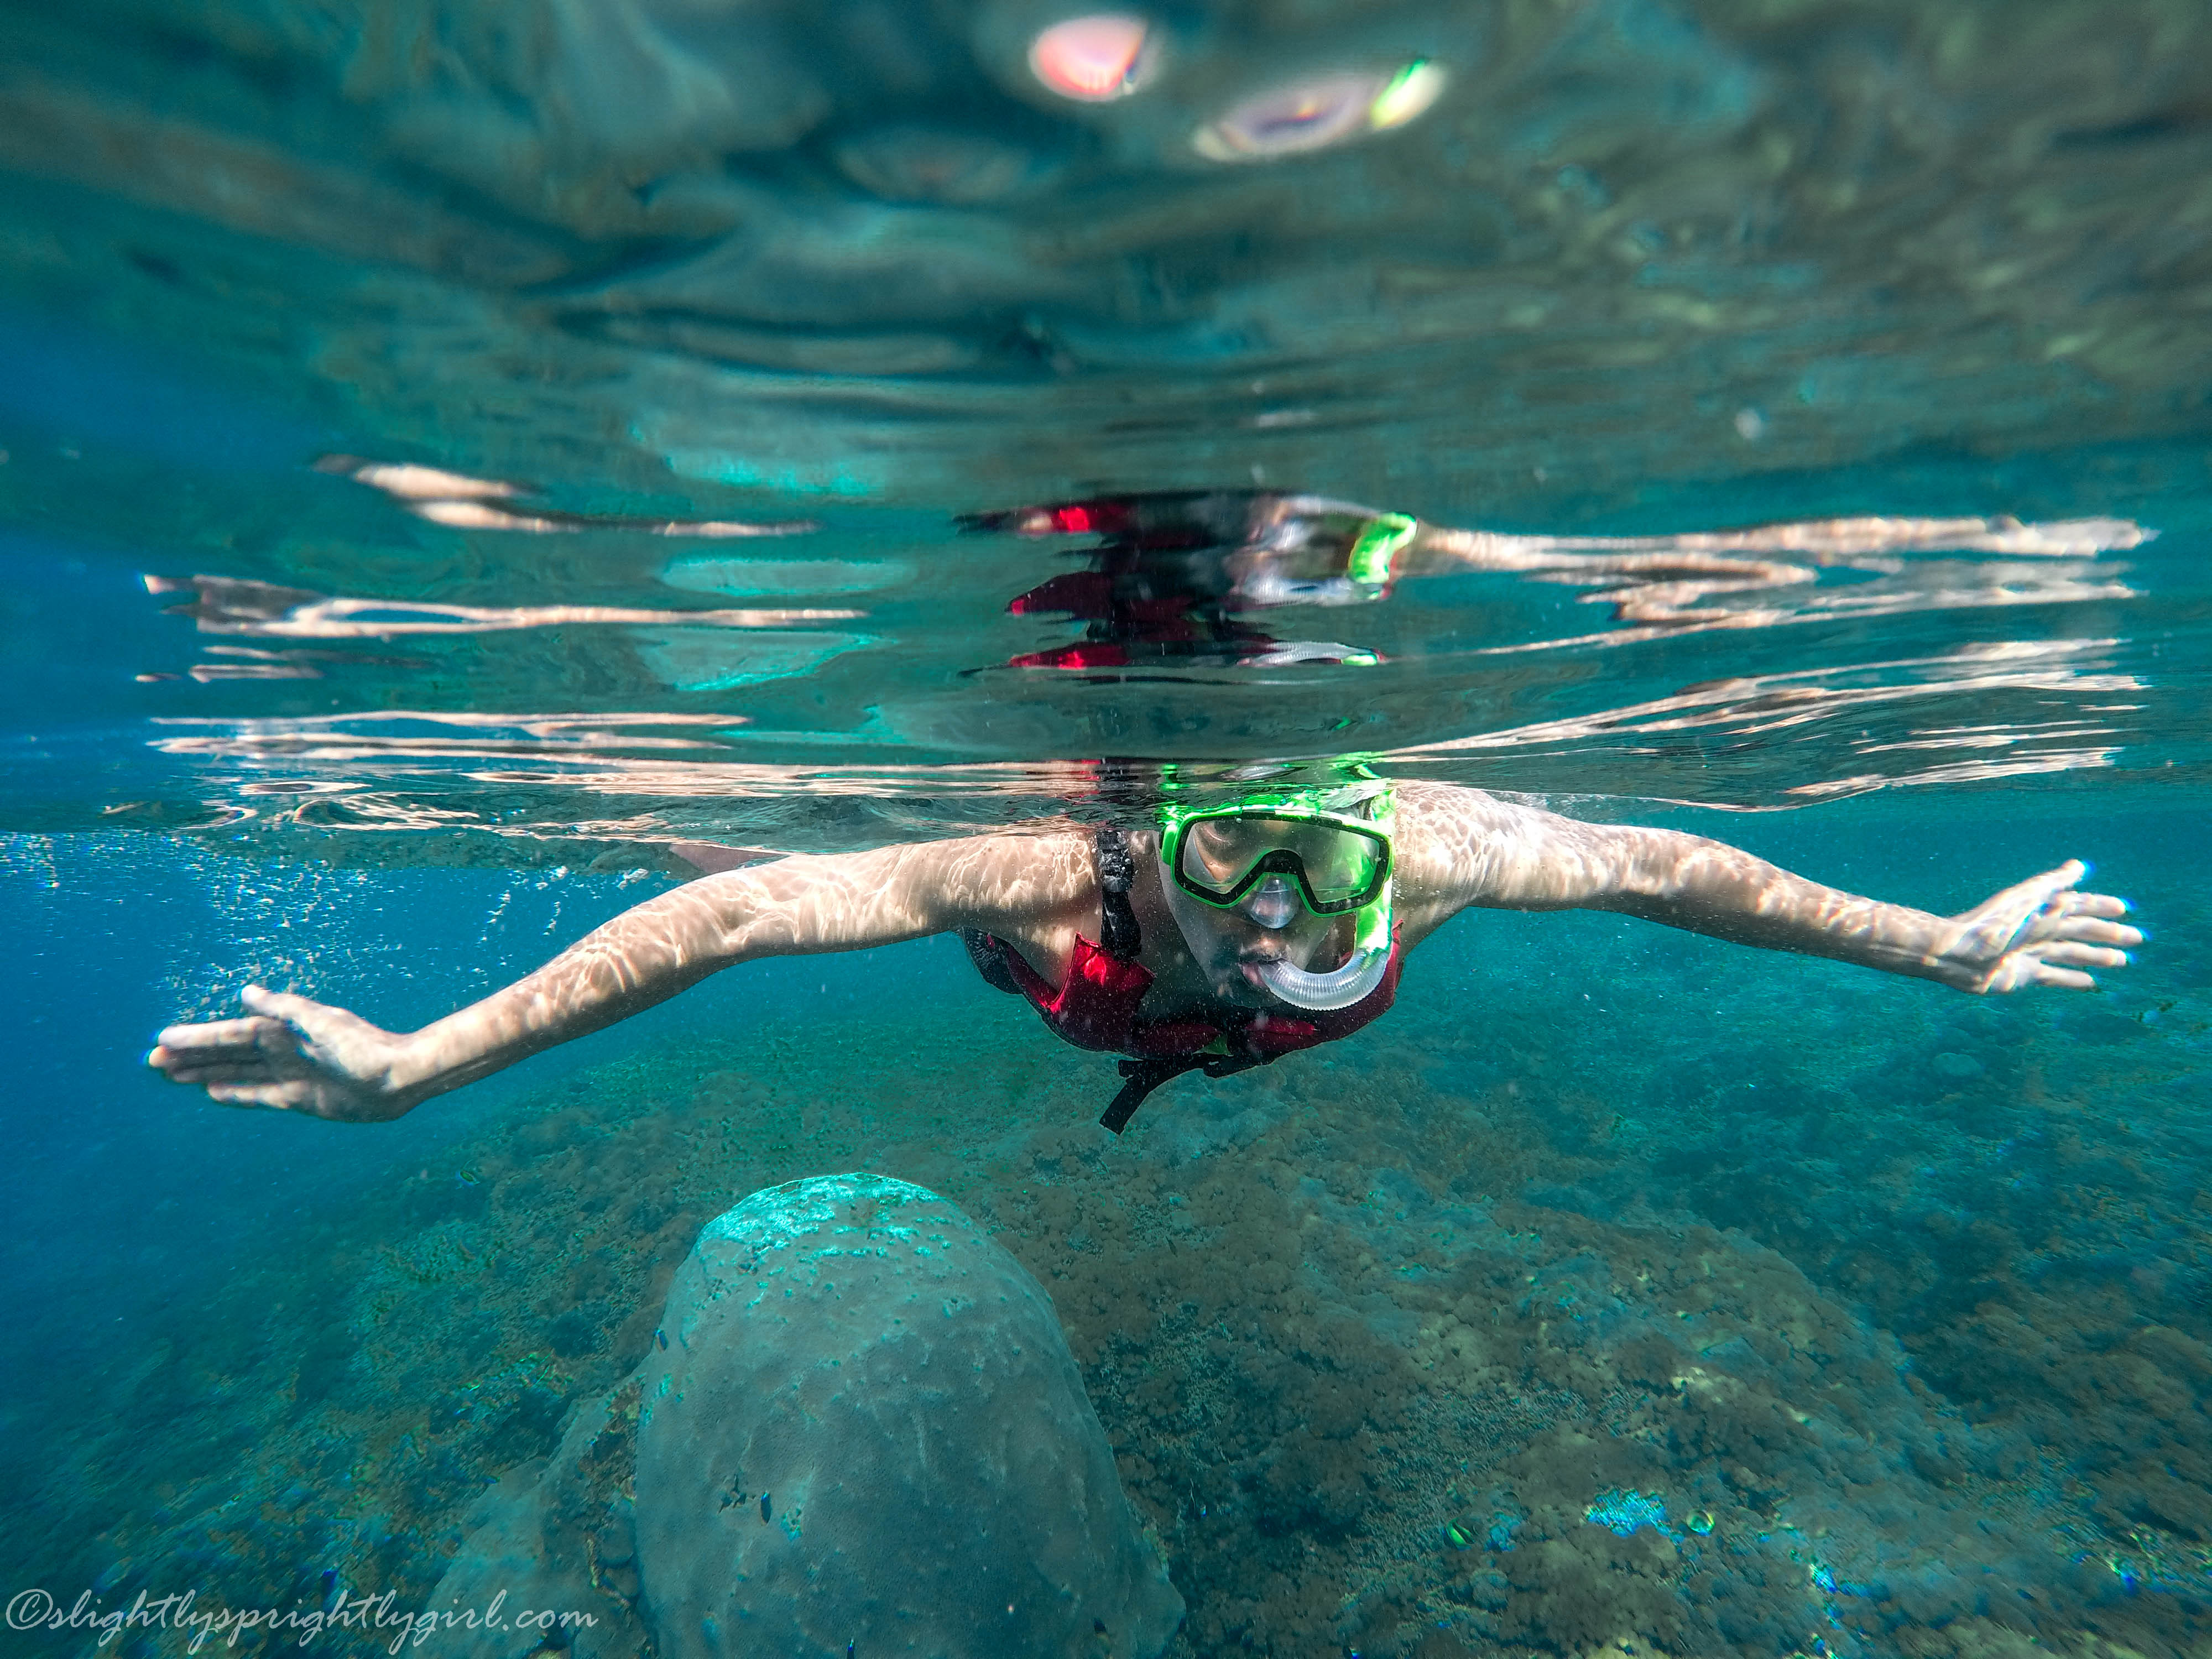 Snorkeling at Sanur beach